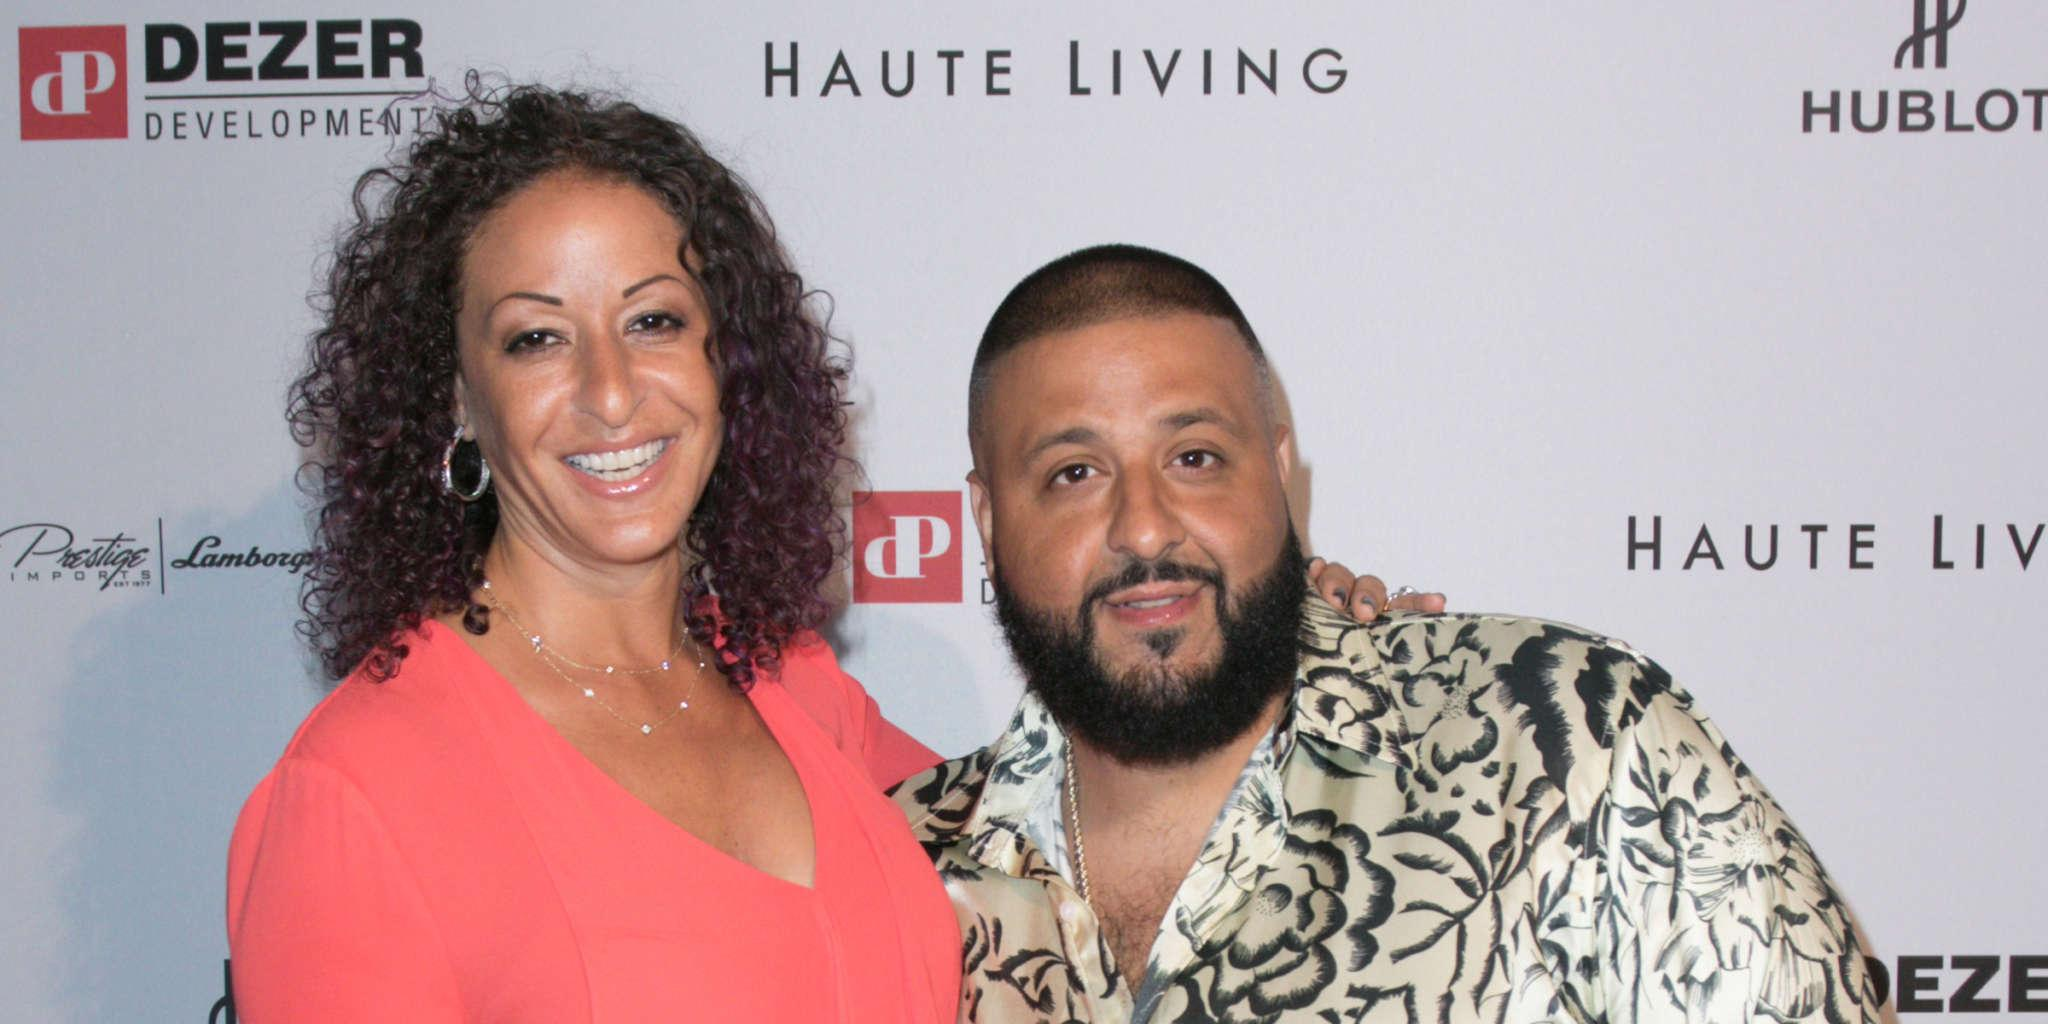 DJ Khaled Is Celebrating His Lady, Nicole Tuck's Birthday - These Two Are A Whole Vibe In These Videos